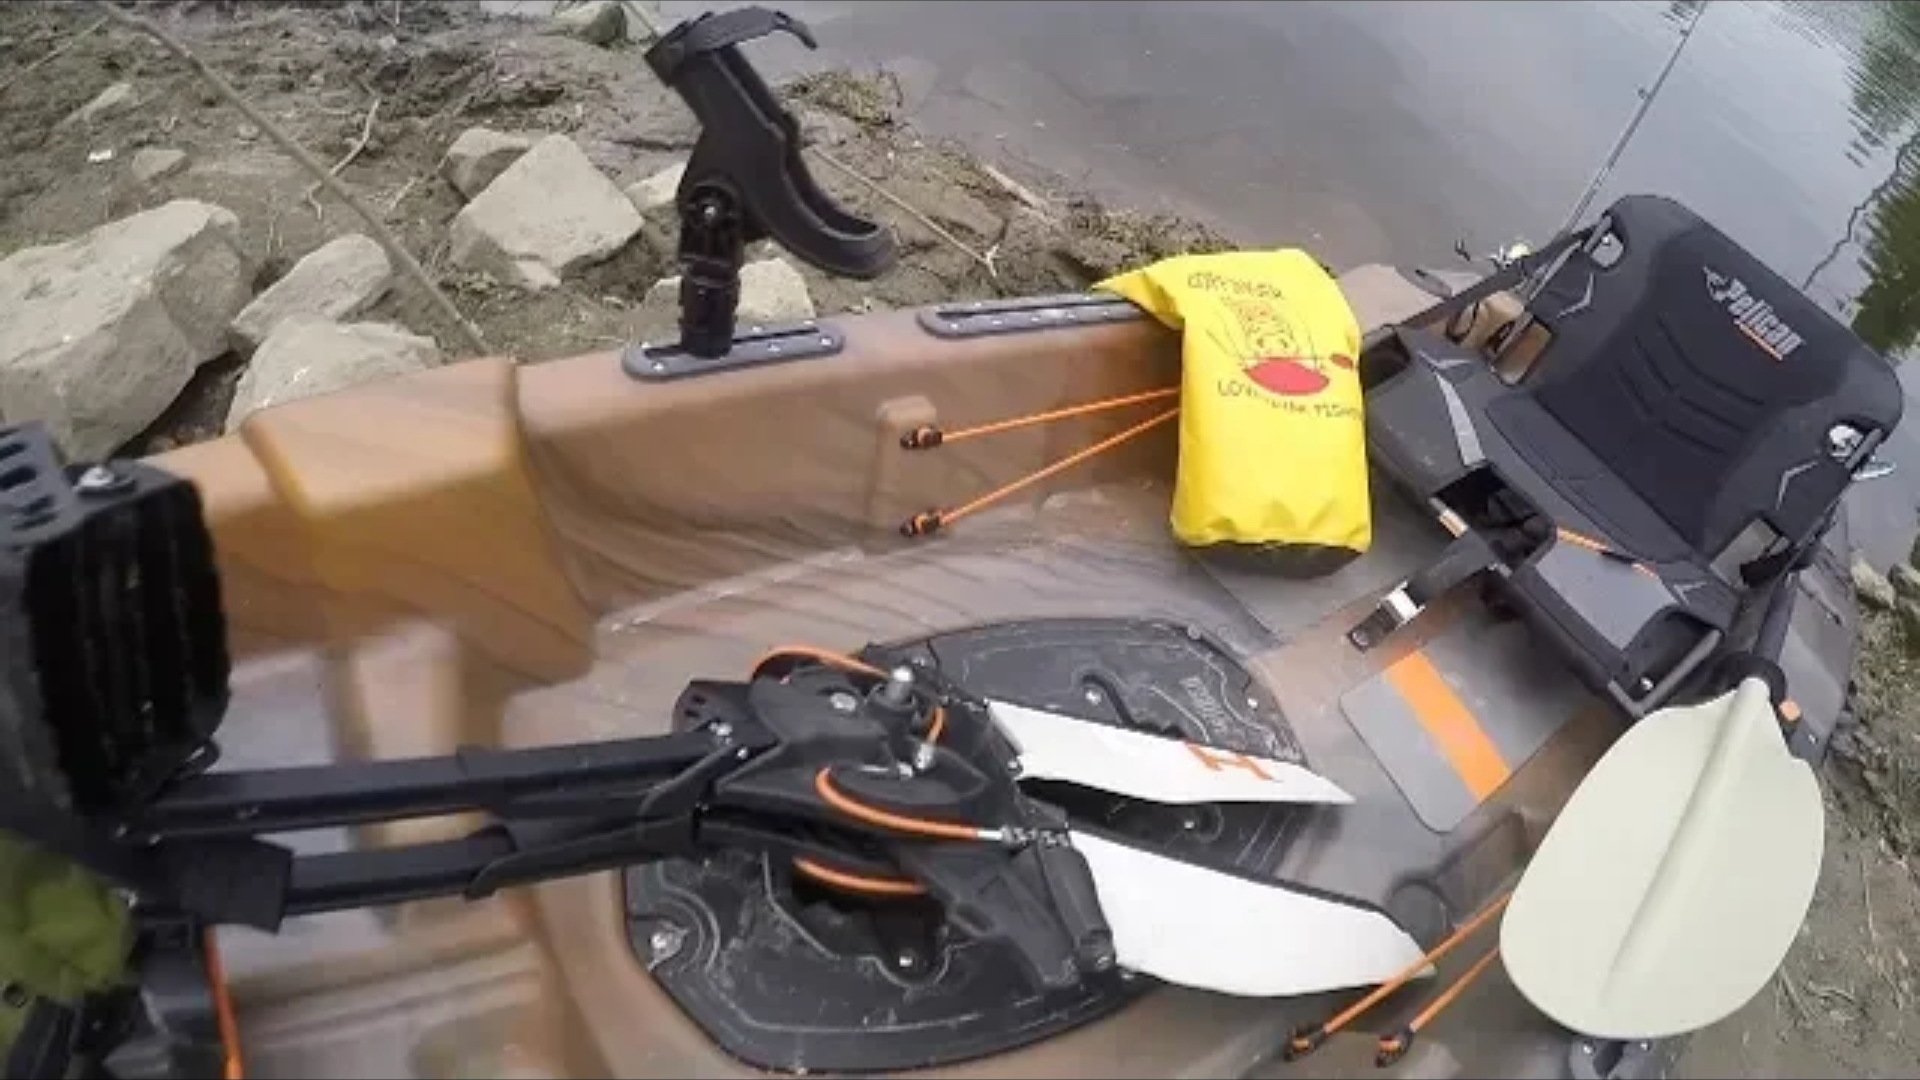 New Pedal kayak from Pelican? - Page 5 - Kayaking and Kayak